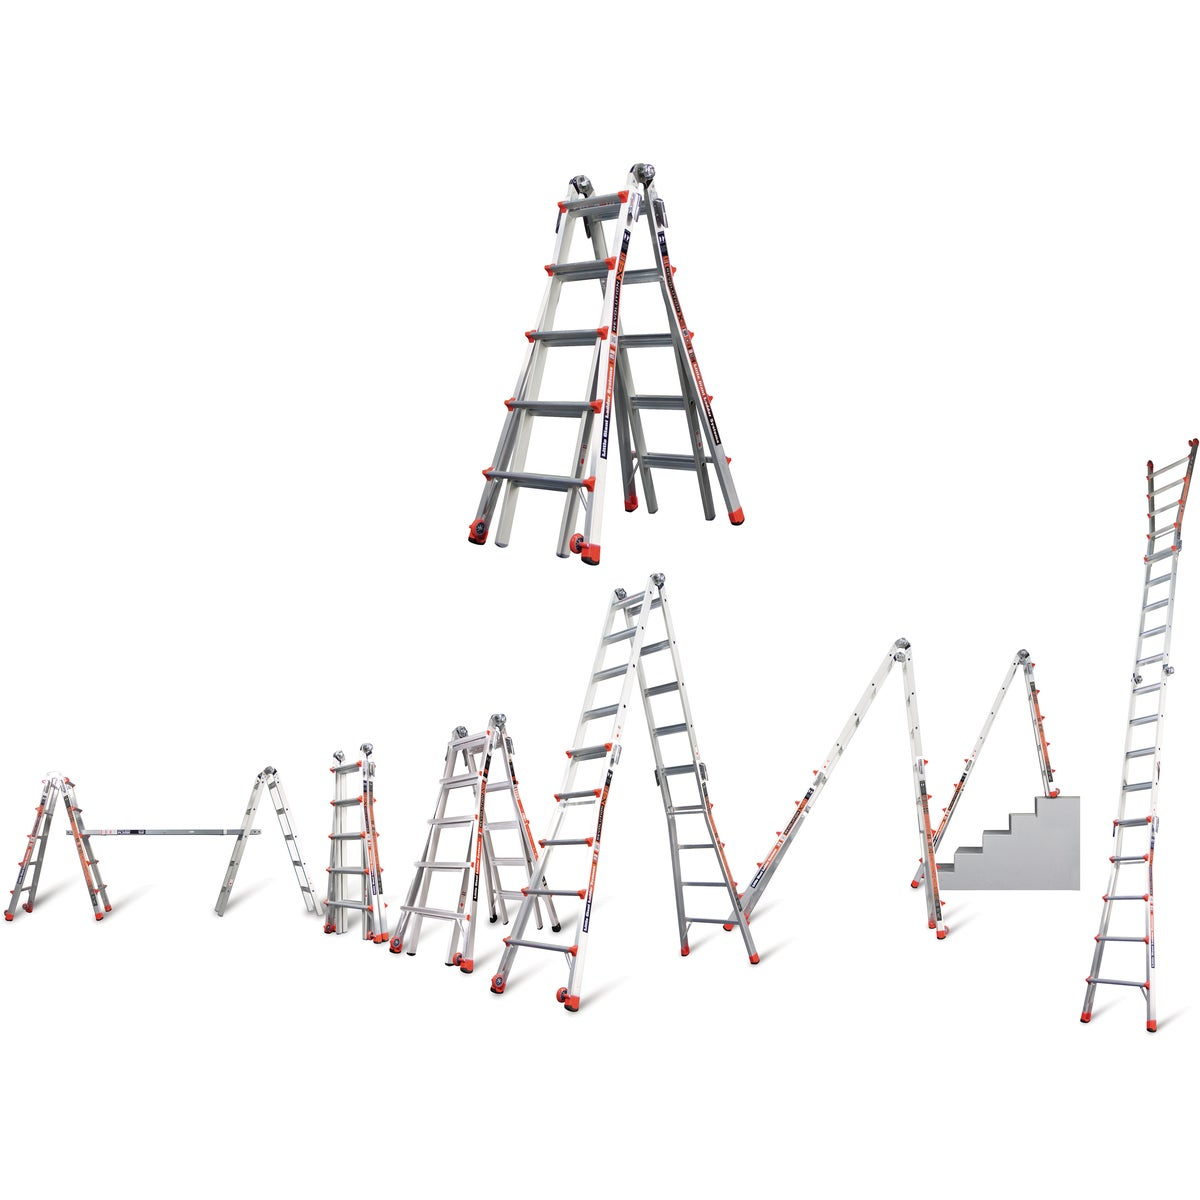 22' TELESCOPING LADDER - 10103LGSW by Wing Enterprises Inc